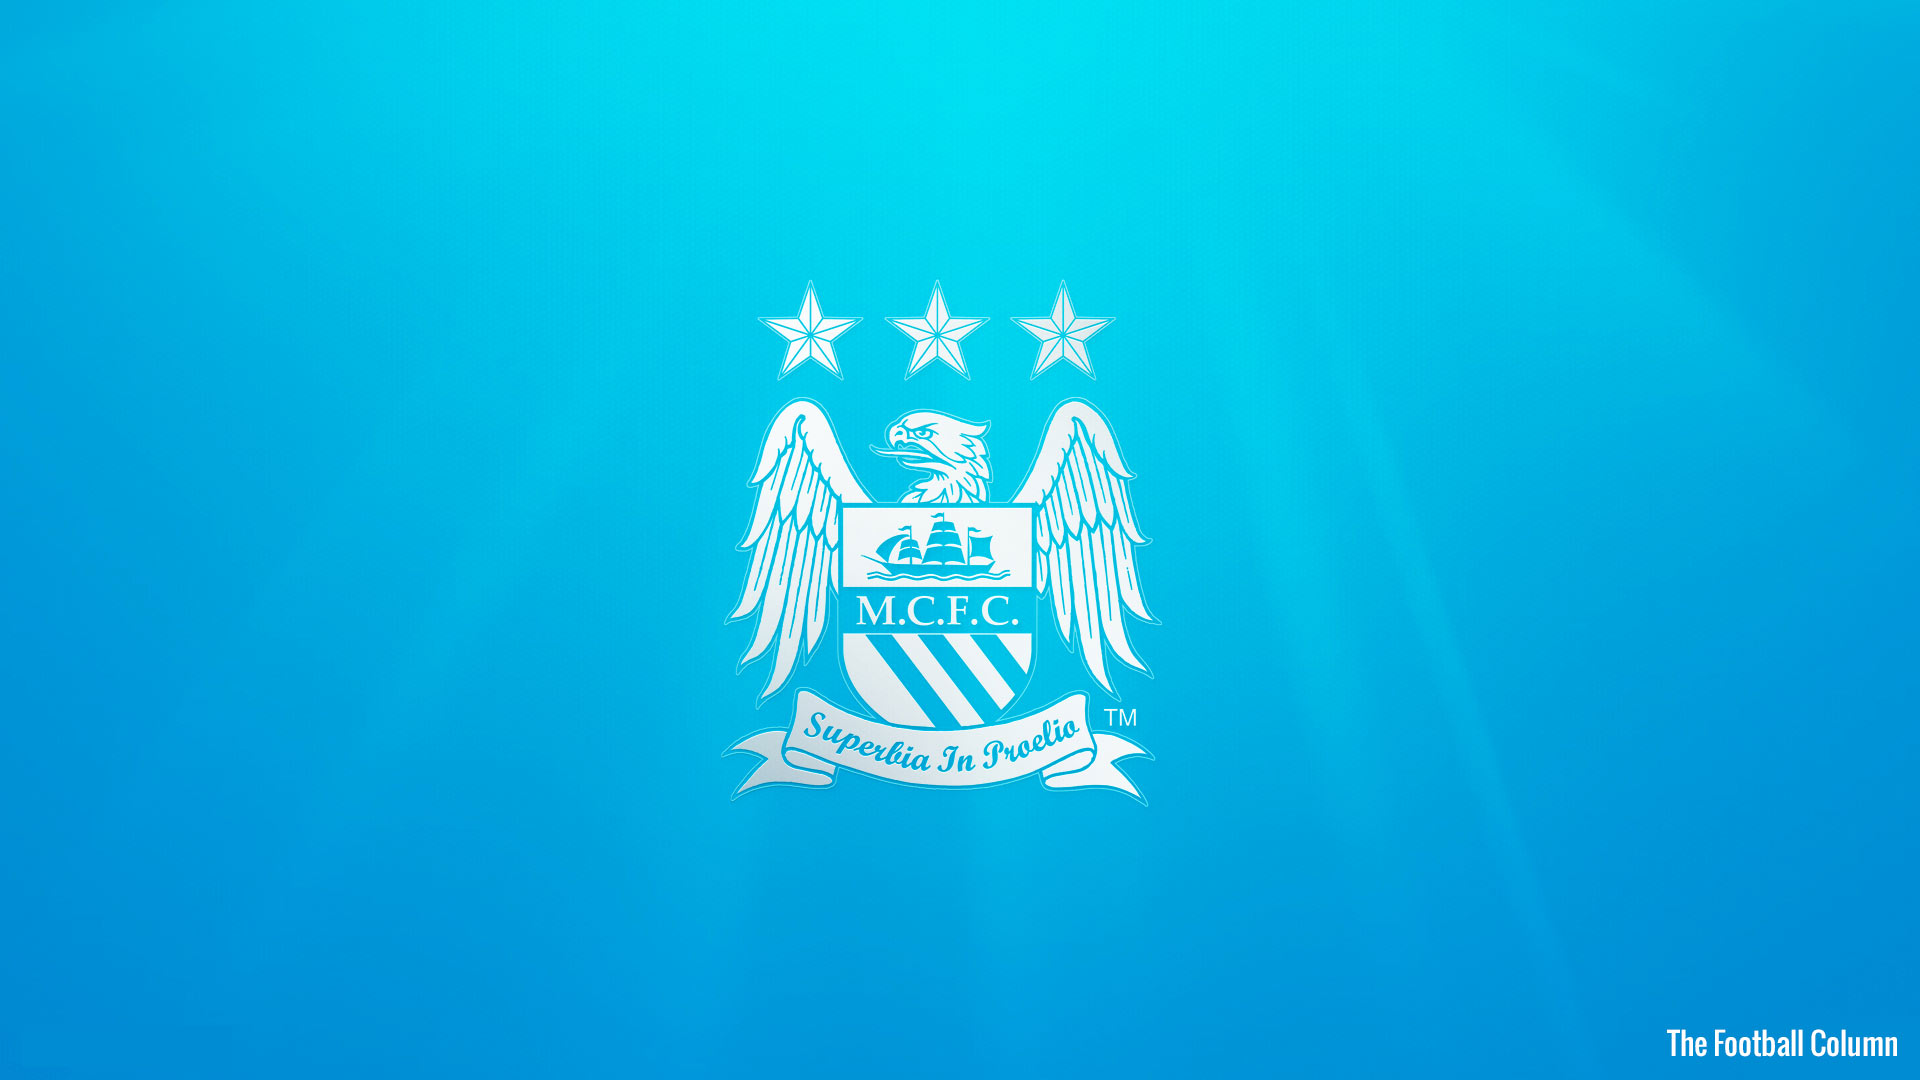 Manchester City FC Wallpaper and Windows 81 Theme All for Windows 1920x1080